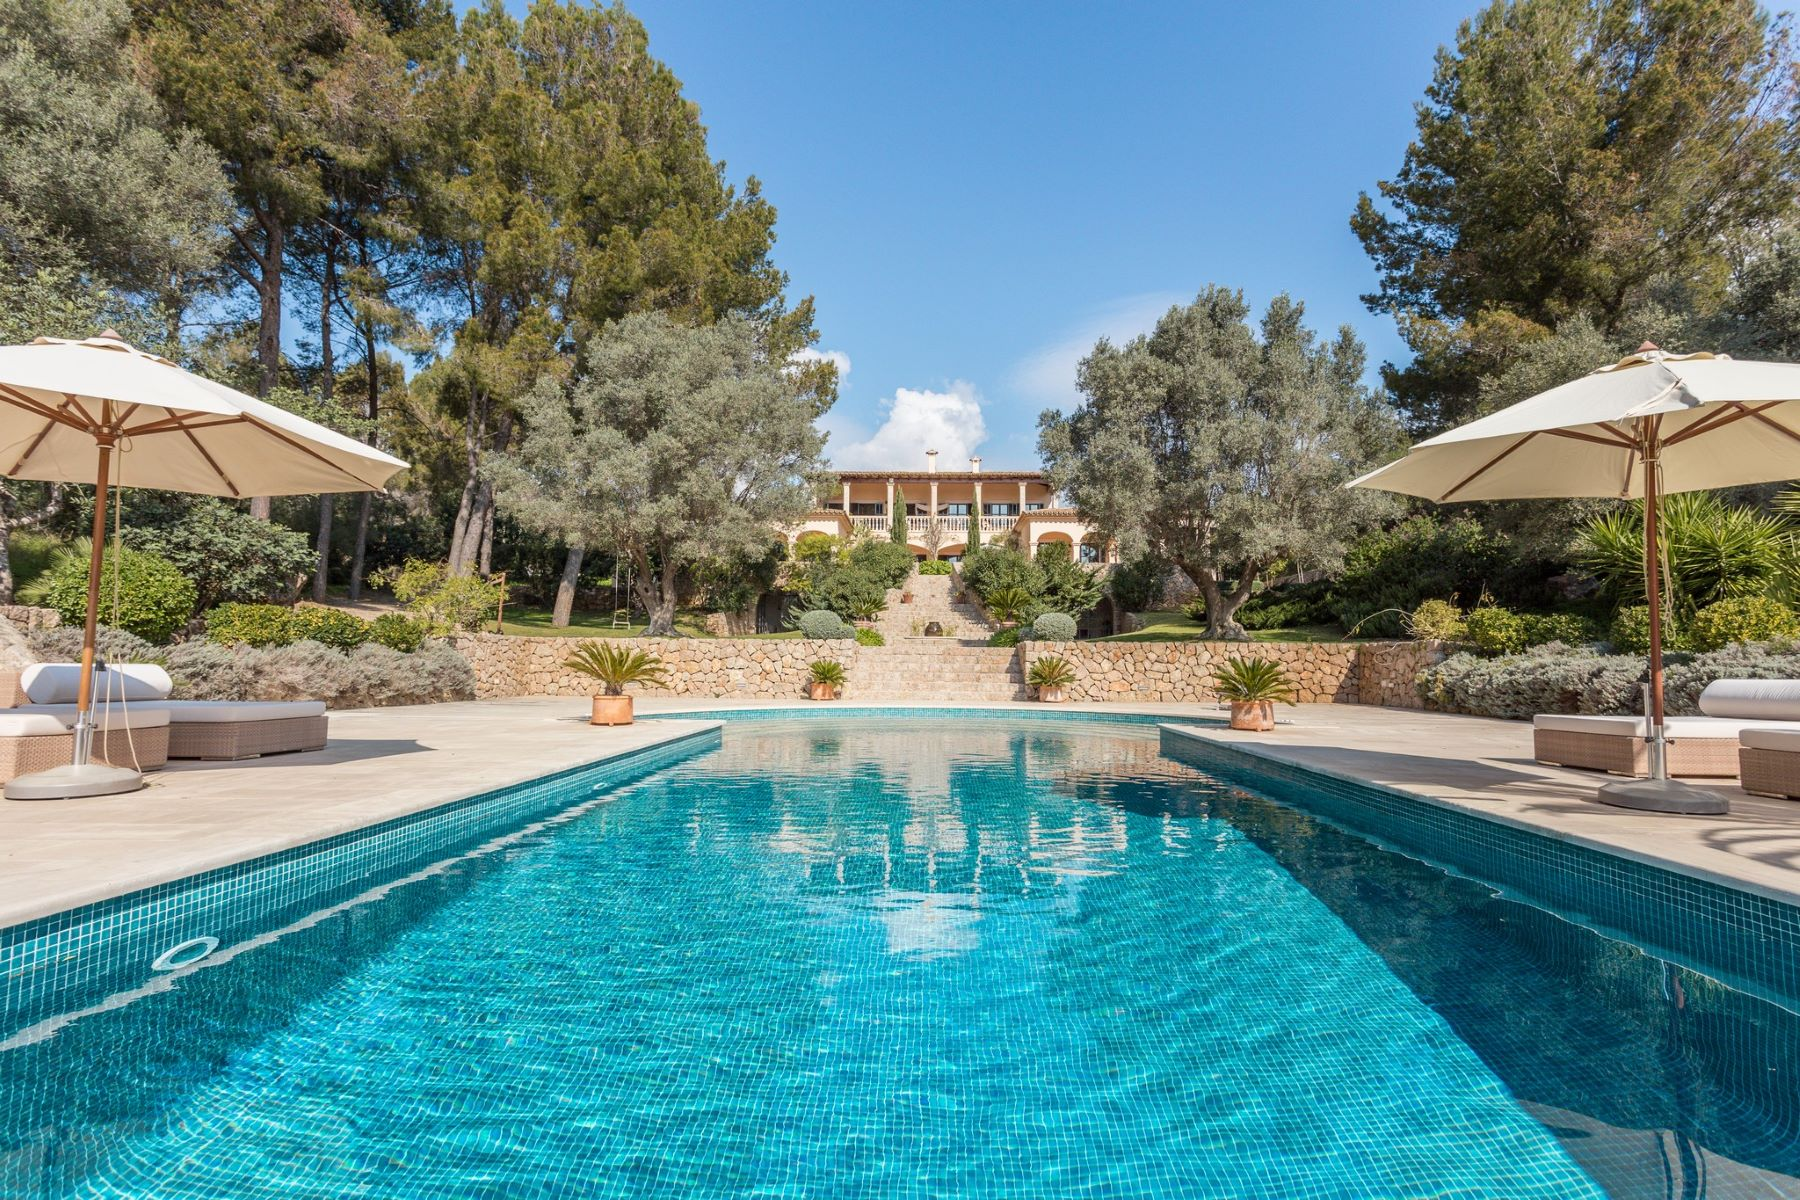 Multi-Family Homes for Sale at Elegance and character in peaceful Esporlas Esporles, Mallorca 07190 Spain